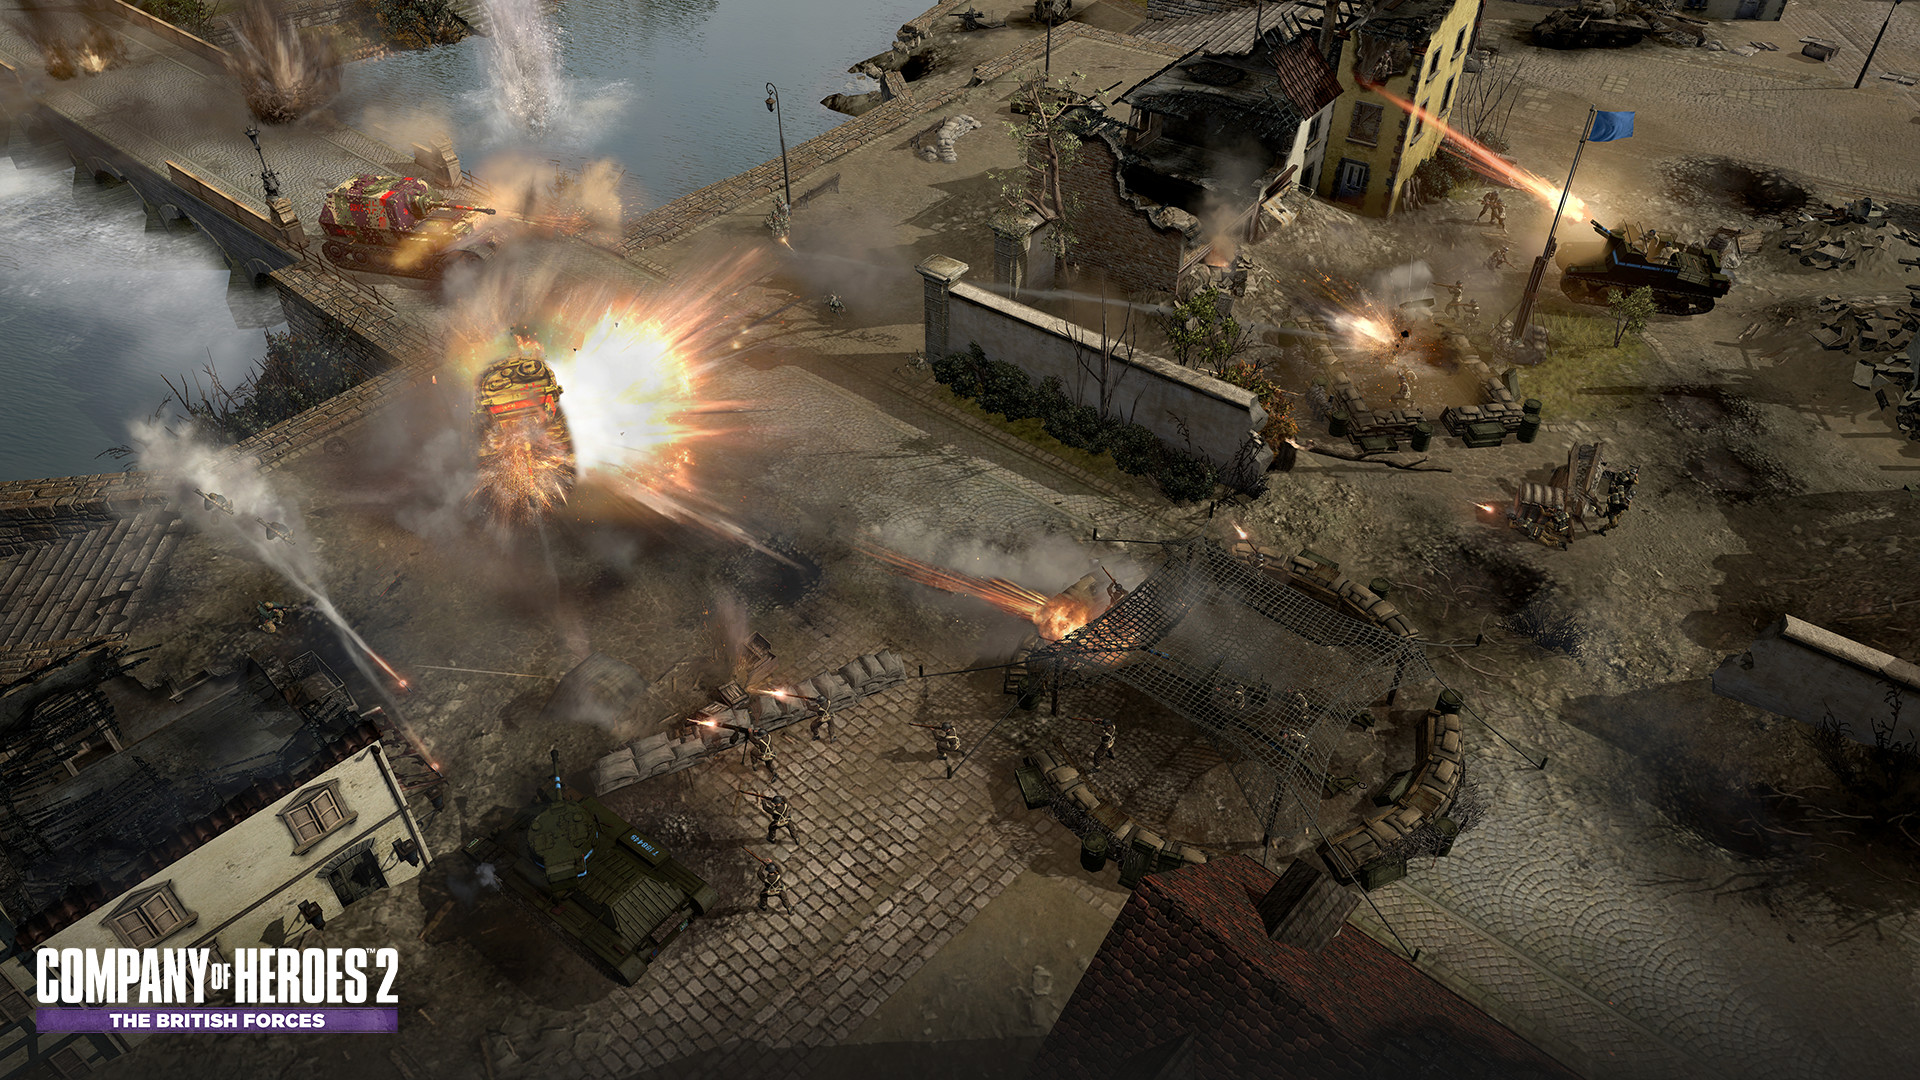 Company of Heroes 2 The British Forces 011115